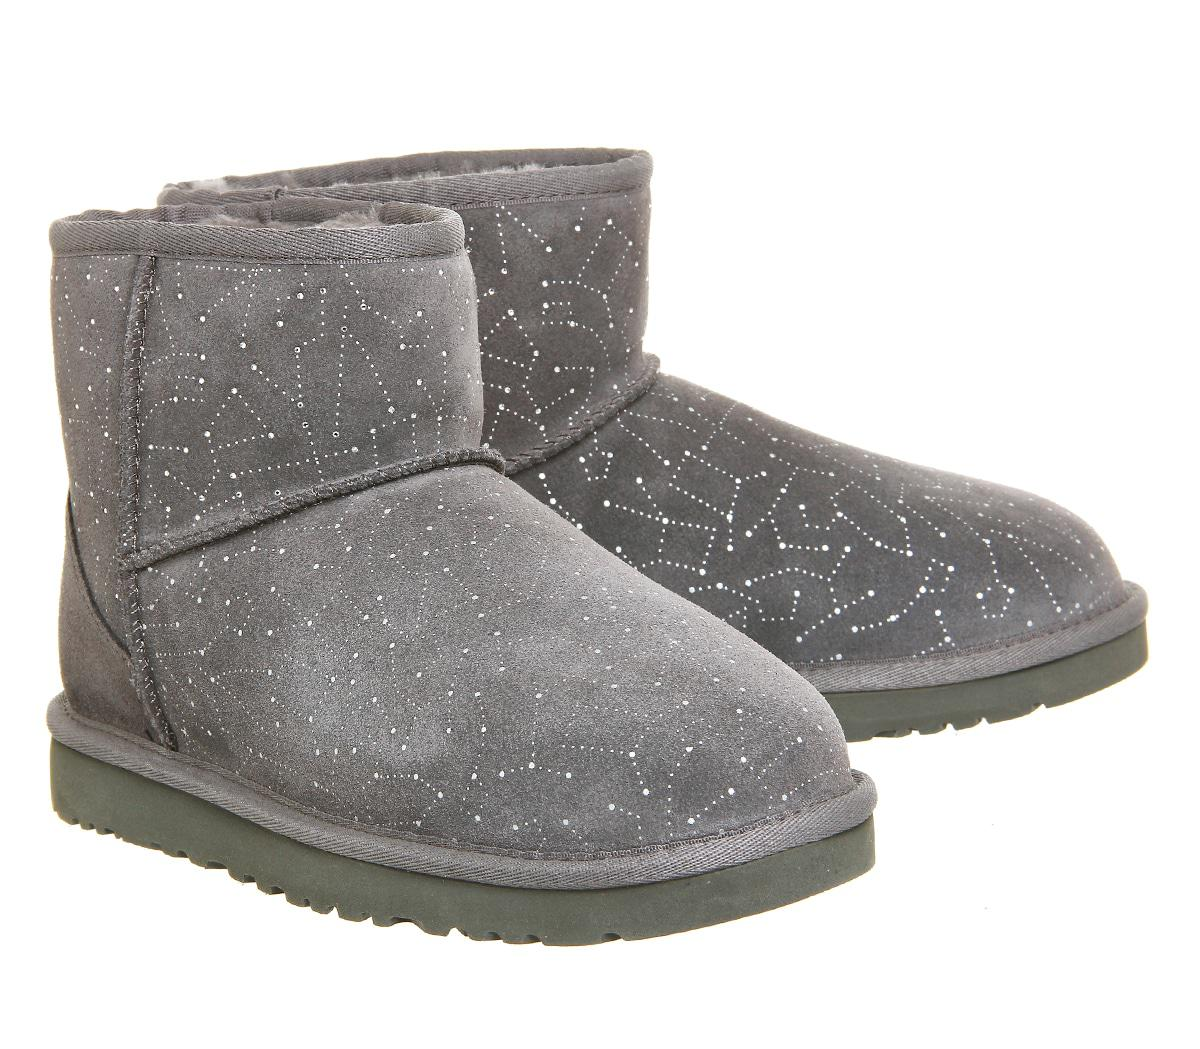 Office UGG Classic Mini Constellation Boots SUEDE 2018 New Cheap Online Cheap Ebay Cheap Sale Extremely Choice HOw35u